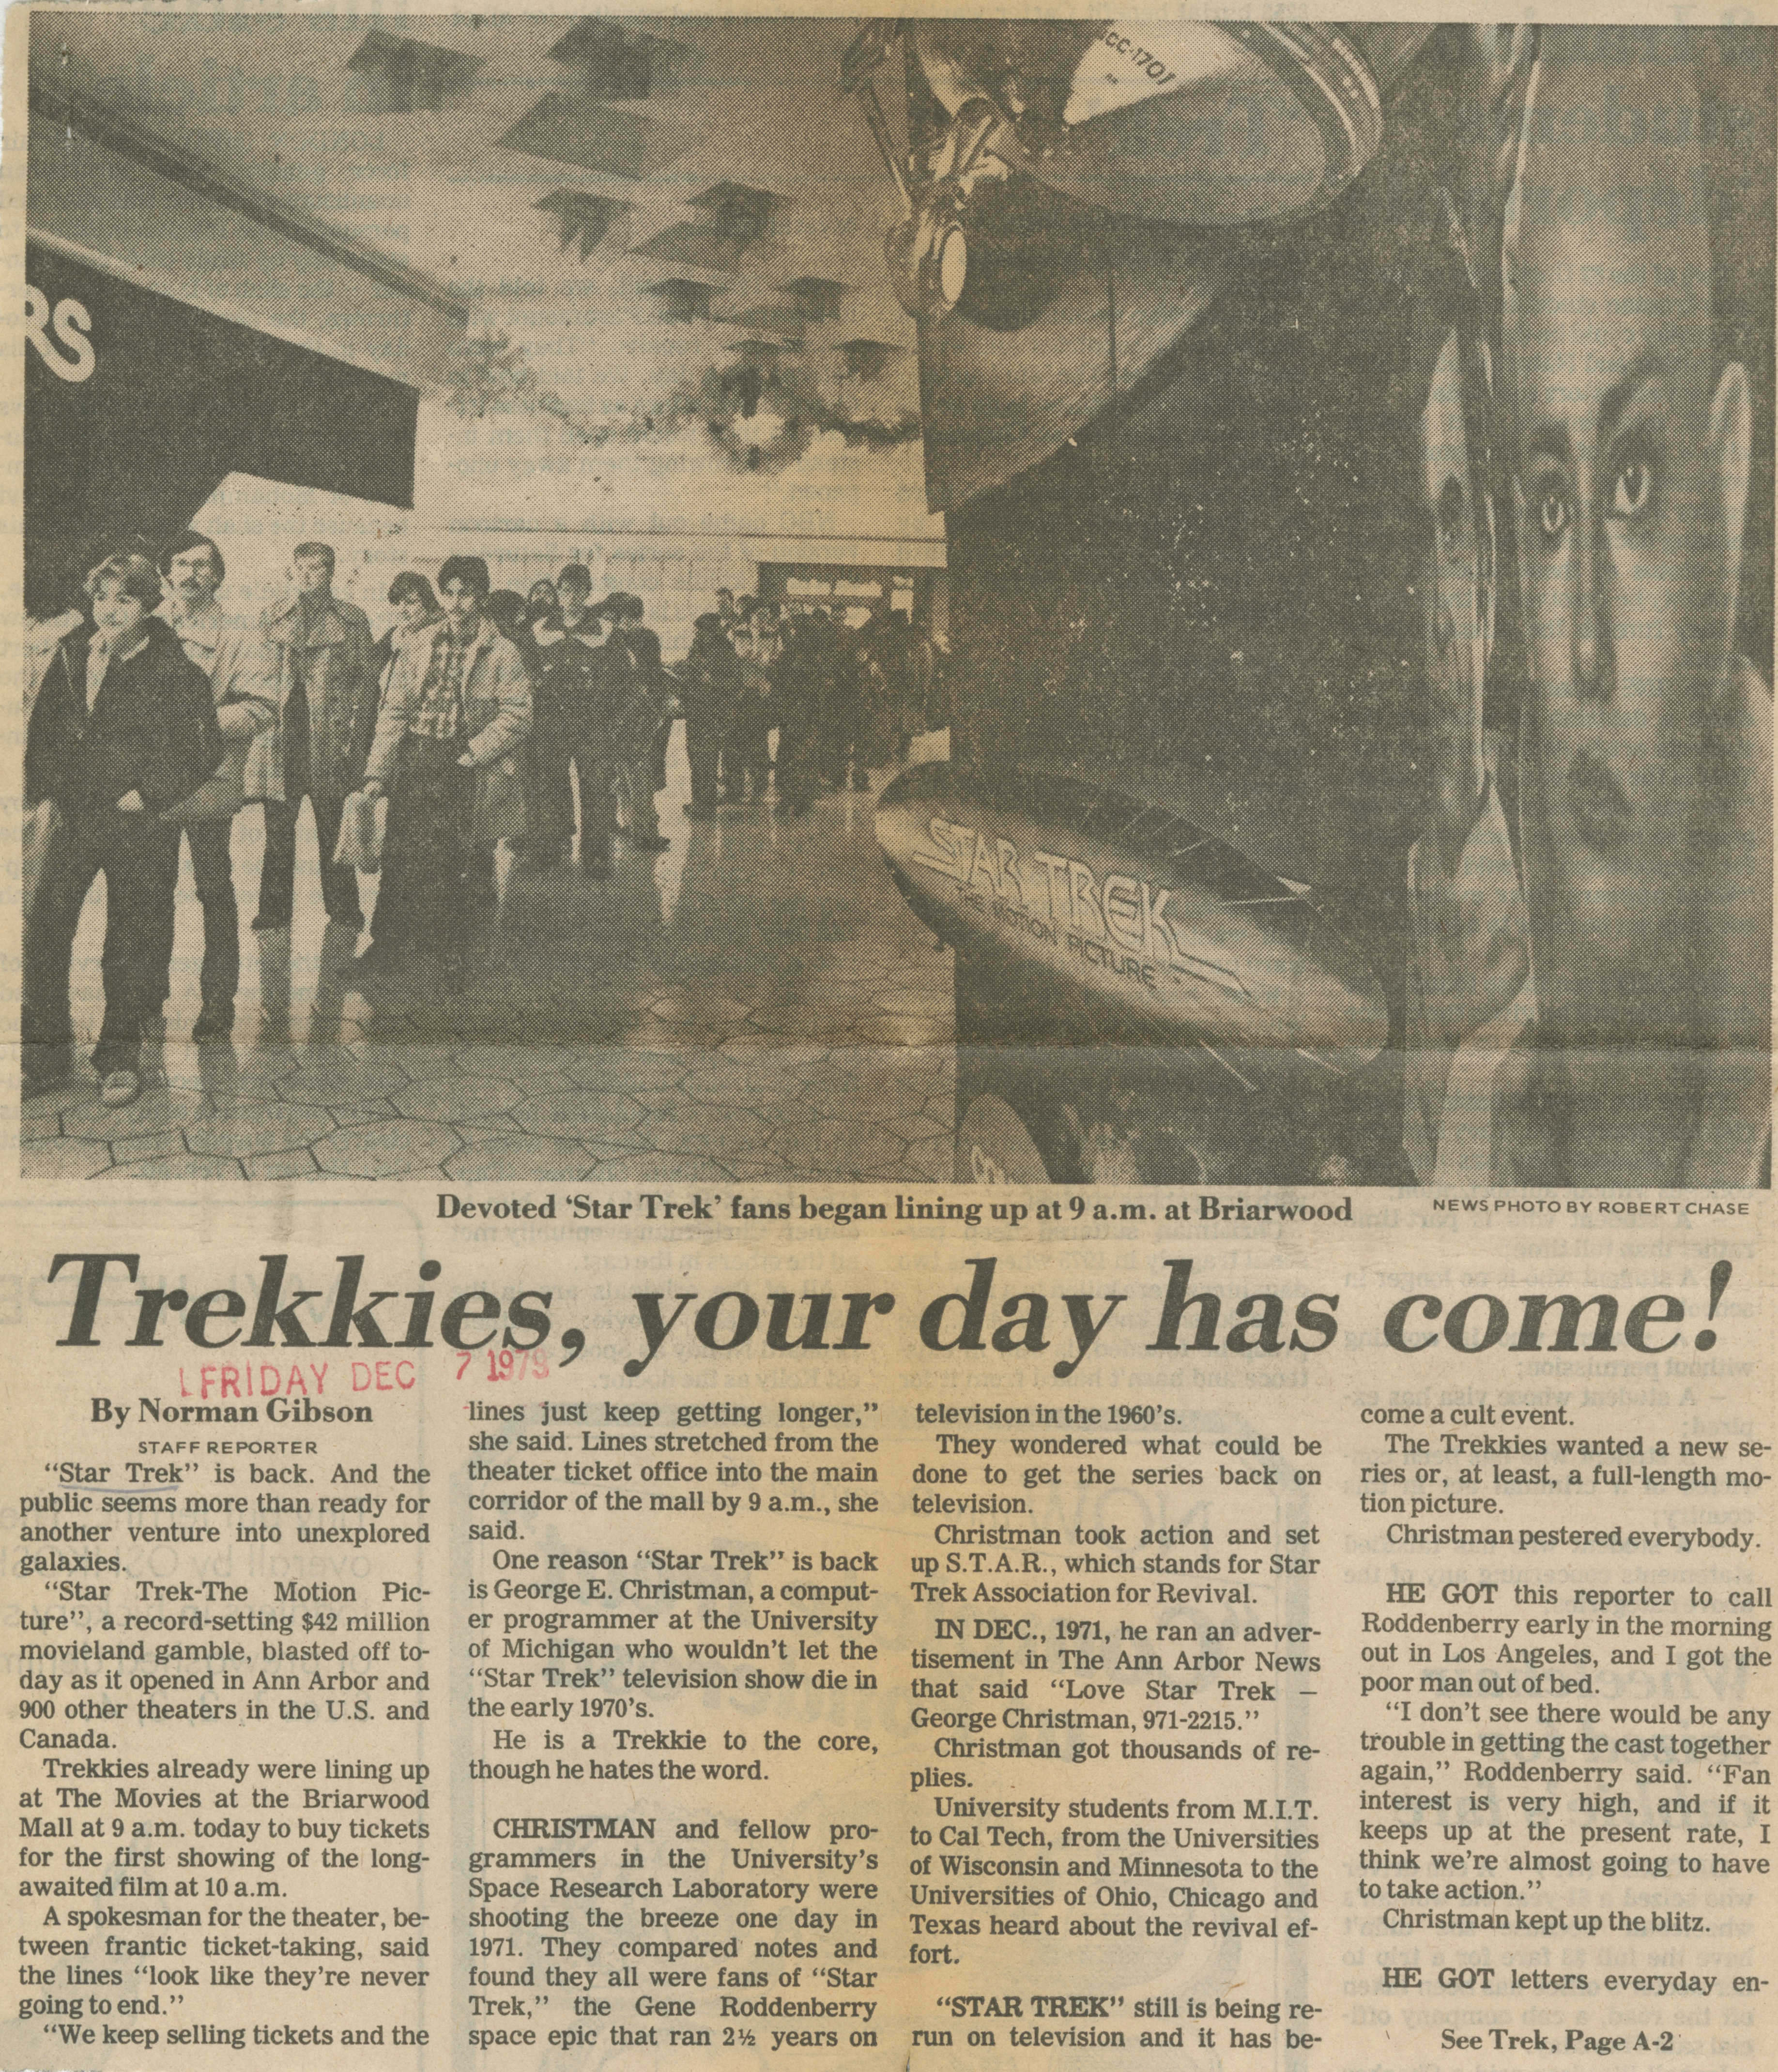 Trekkies, Your Day Has Come! image